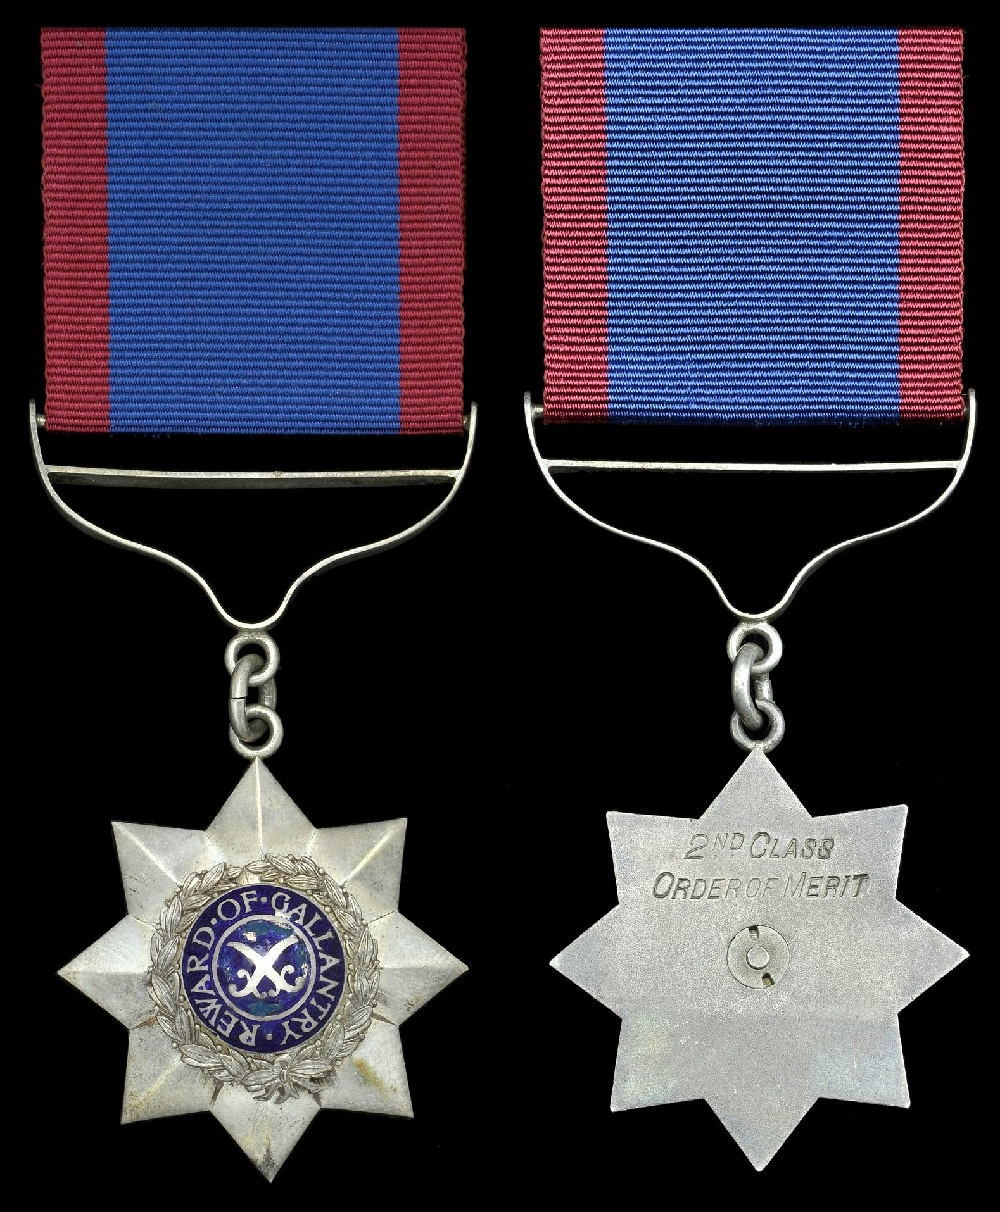 The Indian Order of Merit. The 2nd Class breast badge of the amended 1939-44 version, with 'Reward of Gallantry' instead of 'Reward of Valor' as its centre legend